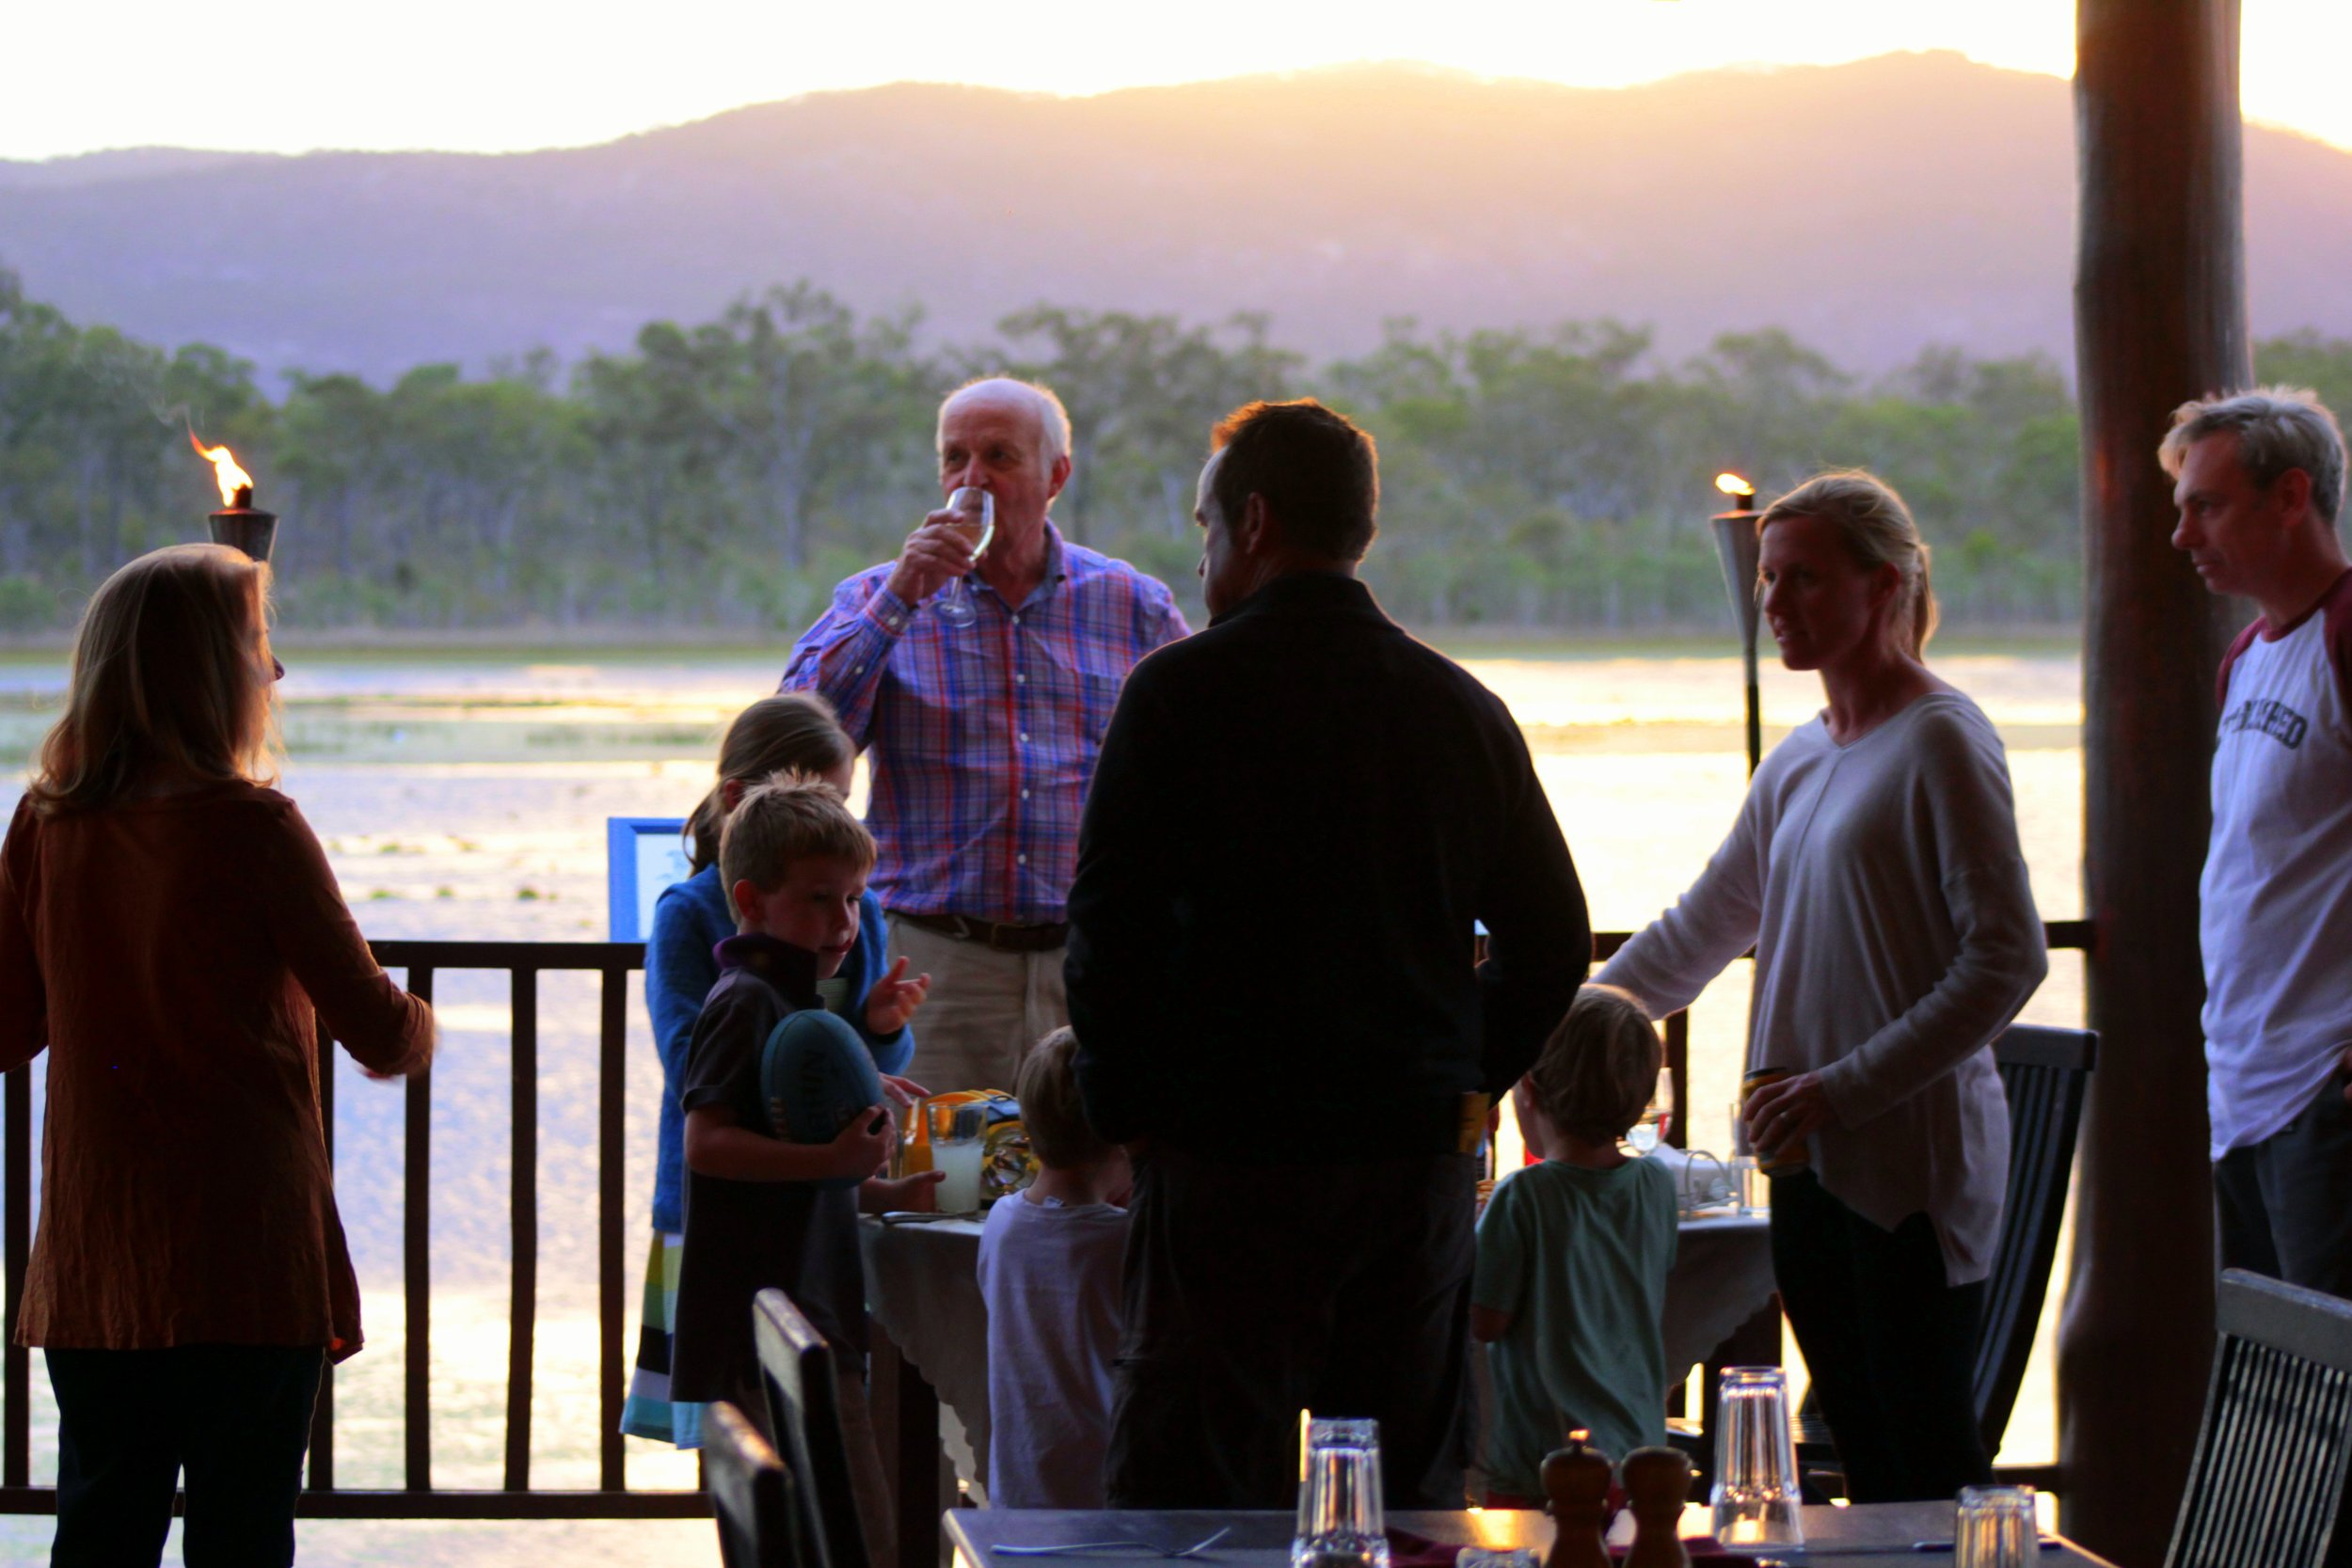 Sunset drinks on the deck for three generations